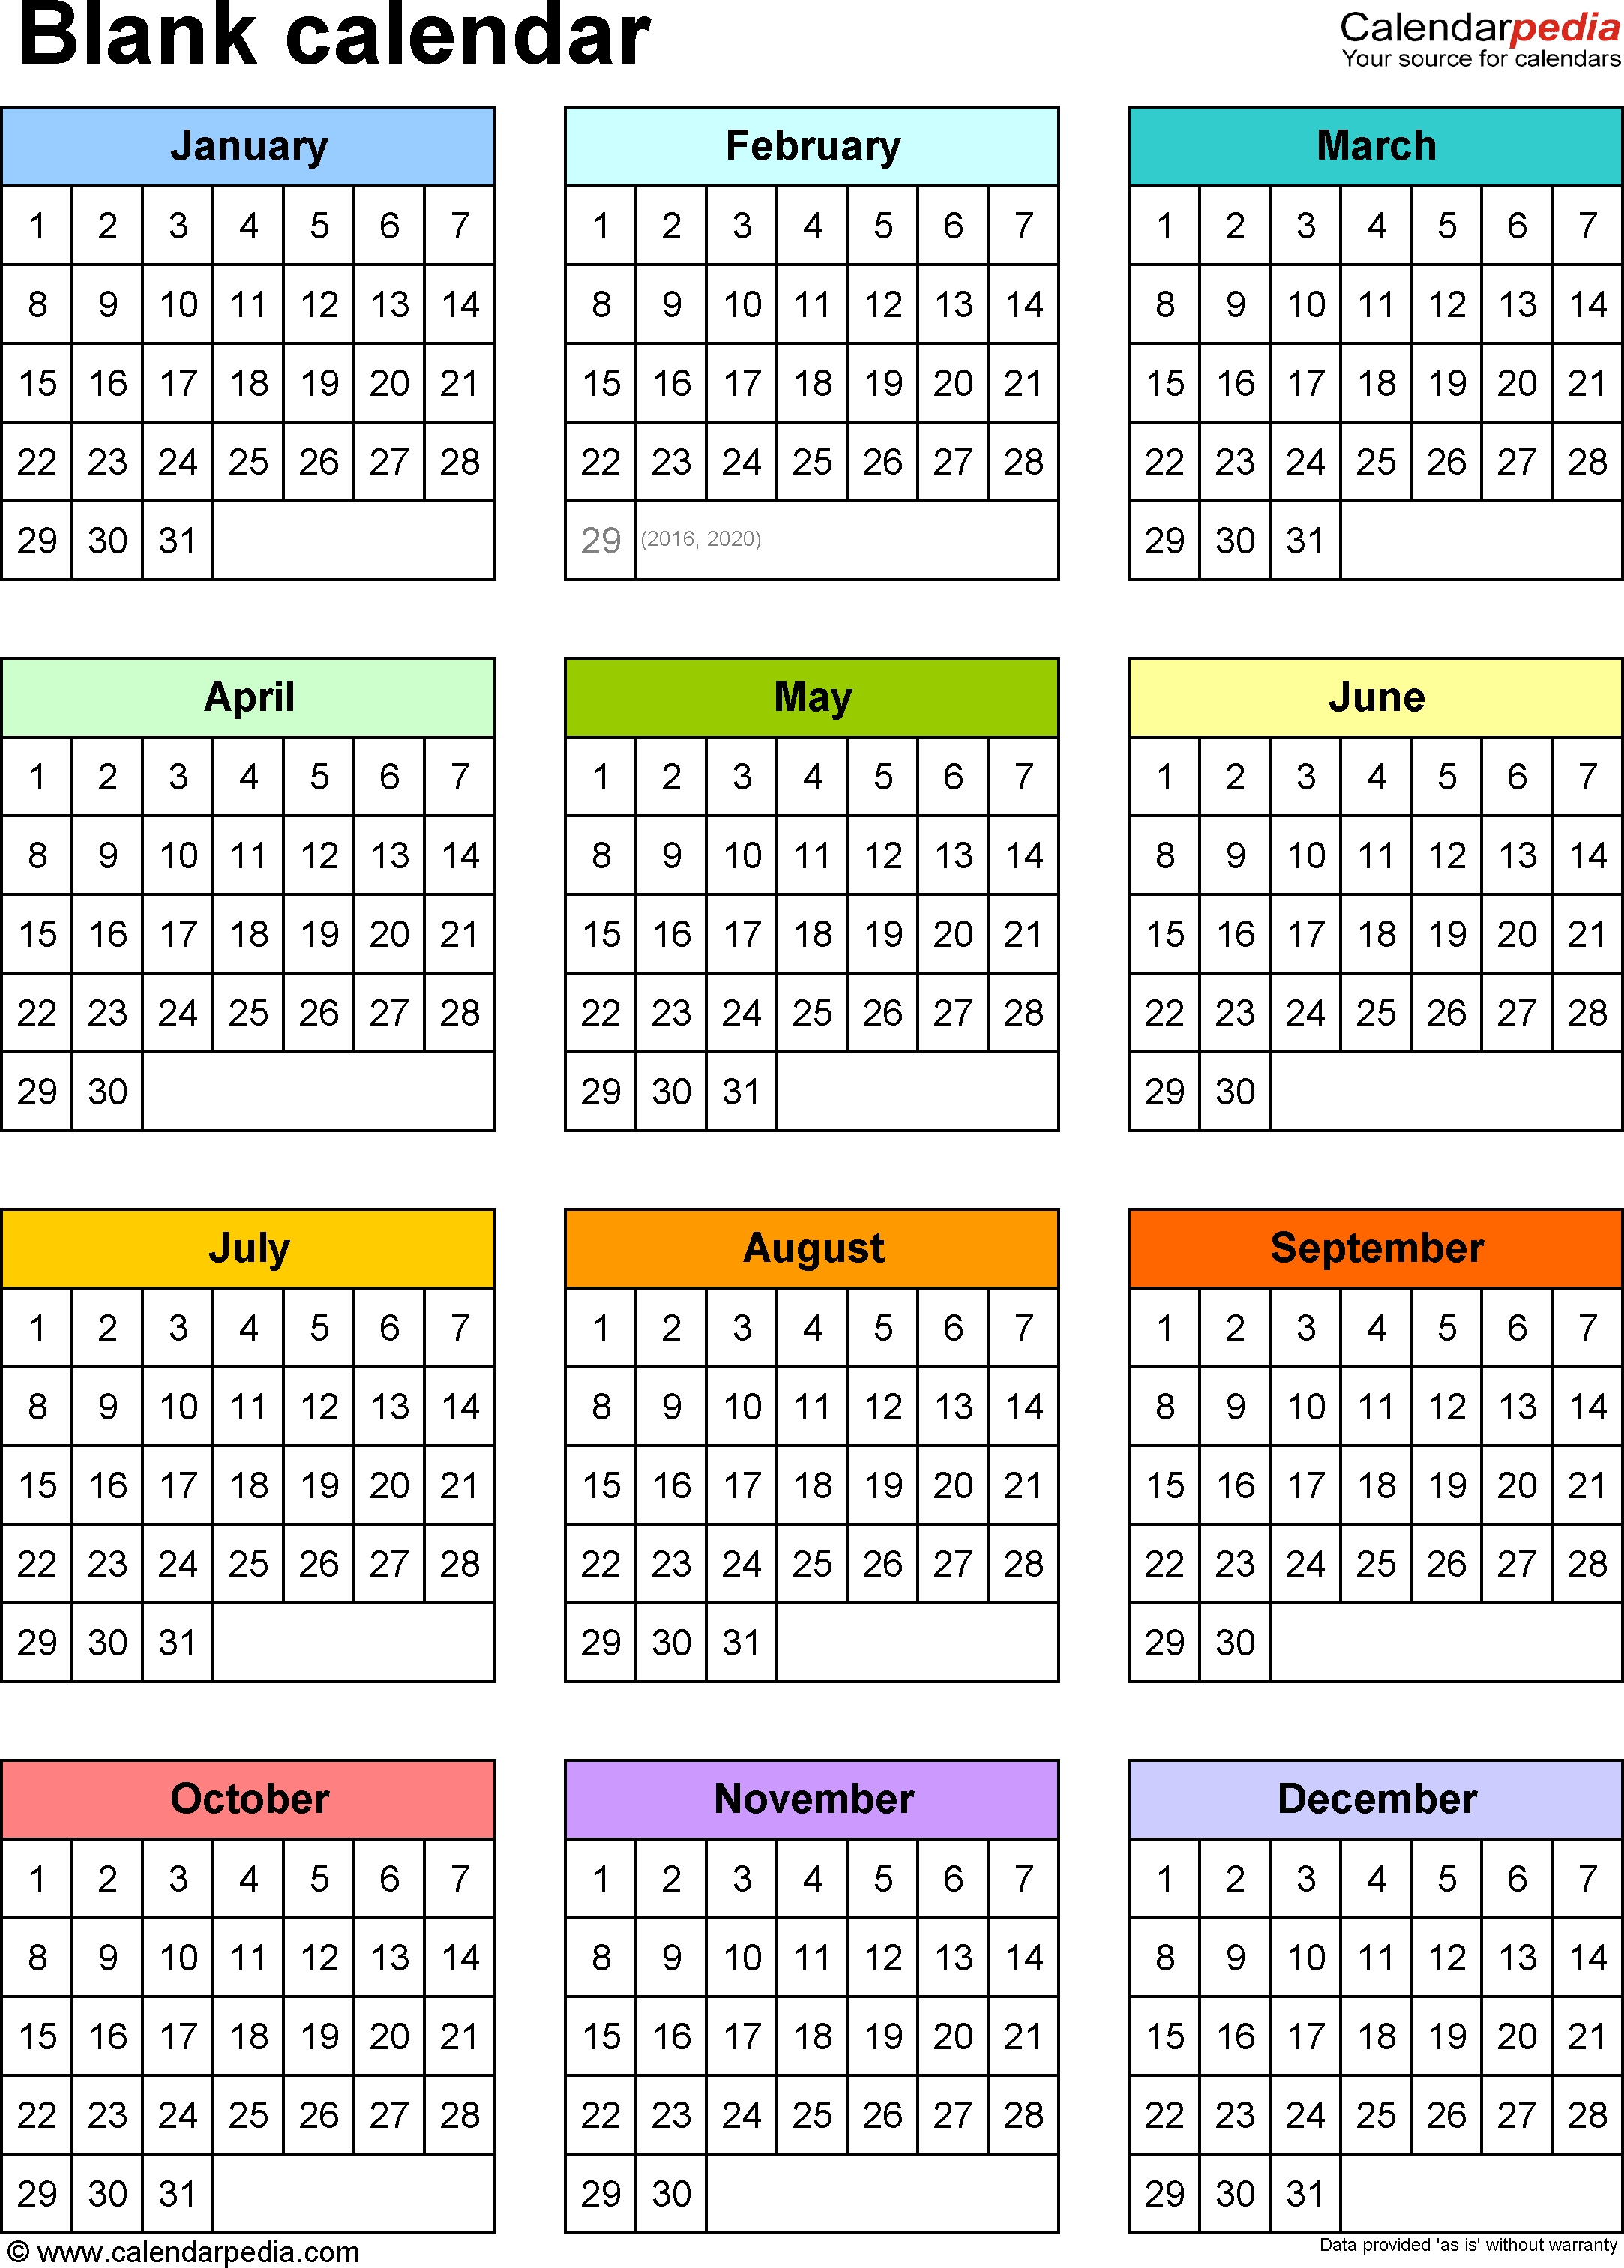 Blank Calendars - Free Printable Microsoft Excel Templates-Blank Yearly Calendar Template In Word 2003